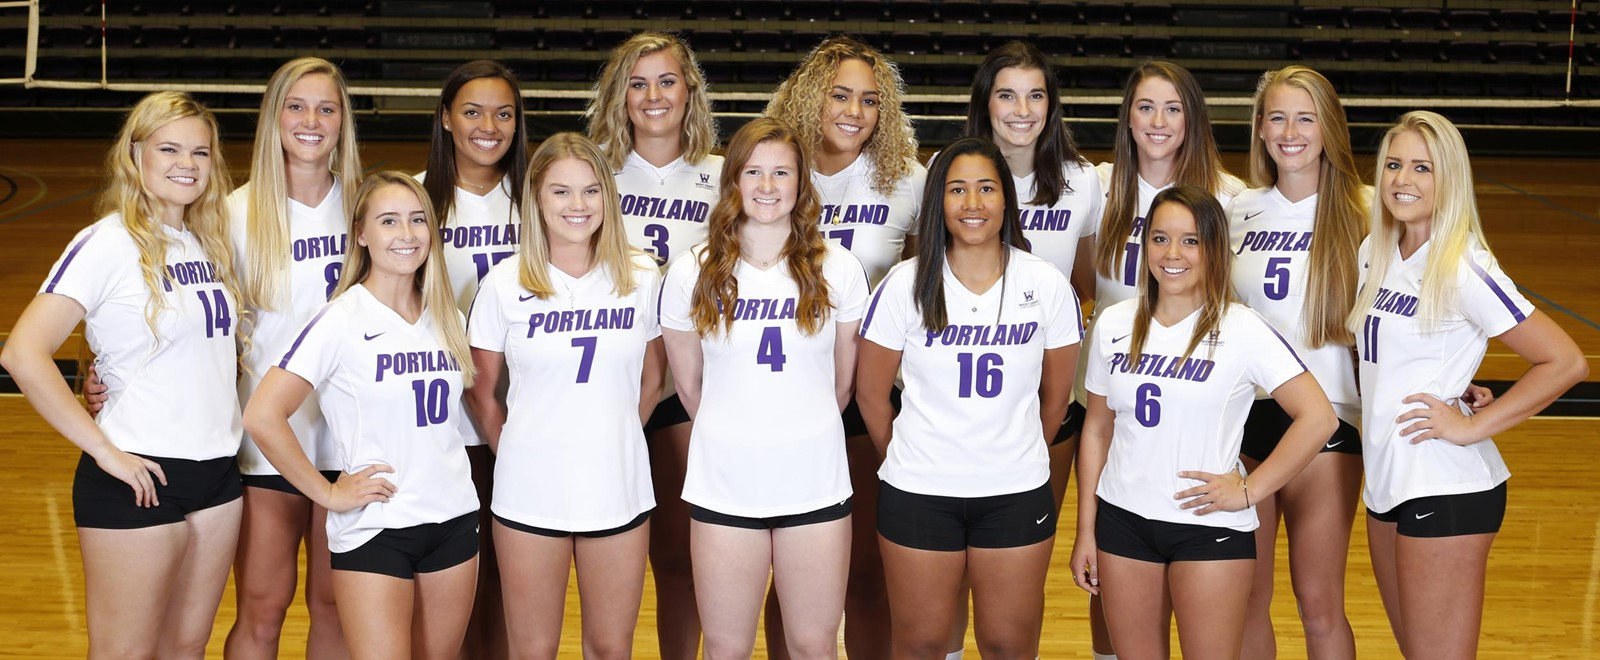 2018 Volleyball Roster University Of Portland Athletics